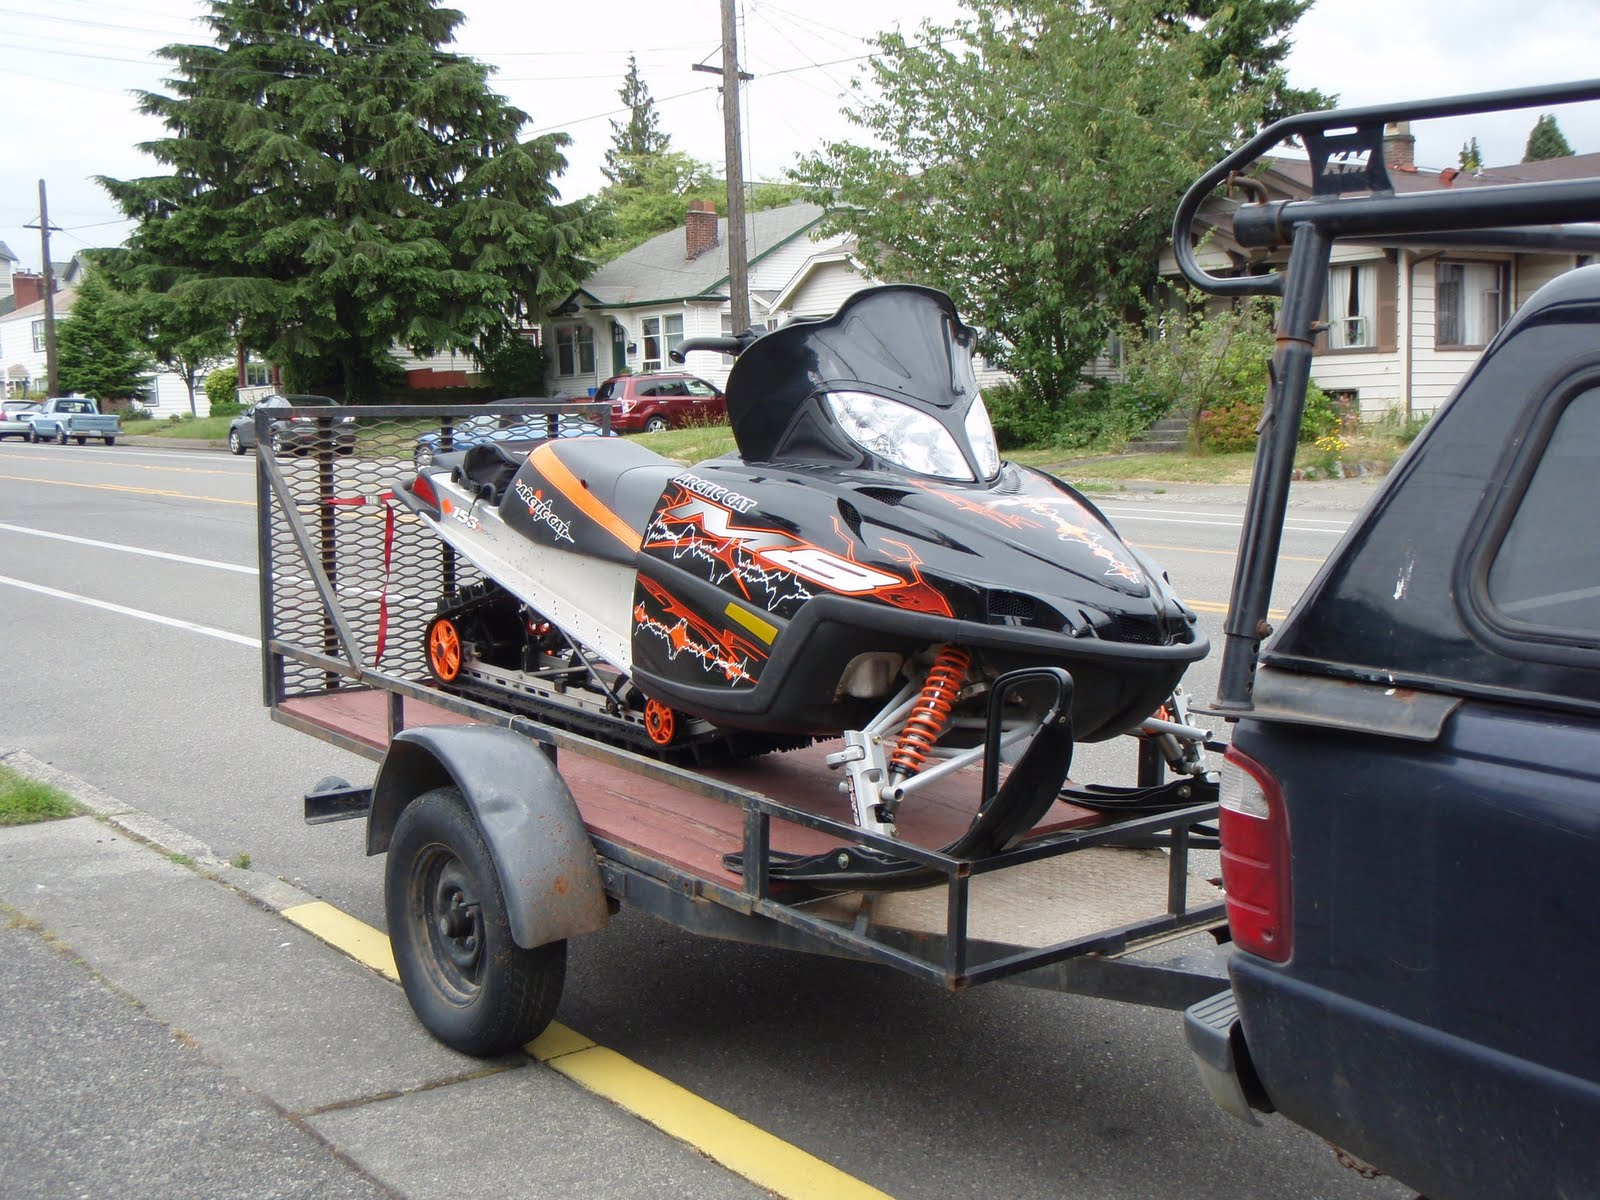 2007 arctic cat M8. planning on keeping the fire chicken (i.e. my old sled) so be nice to me and maybe i'll take ya BRAPPIN sometime. rdrr.